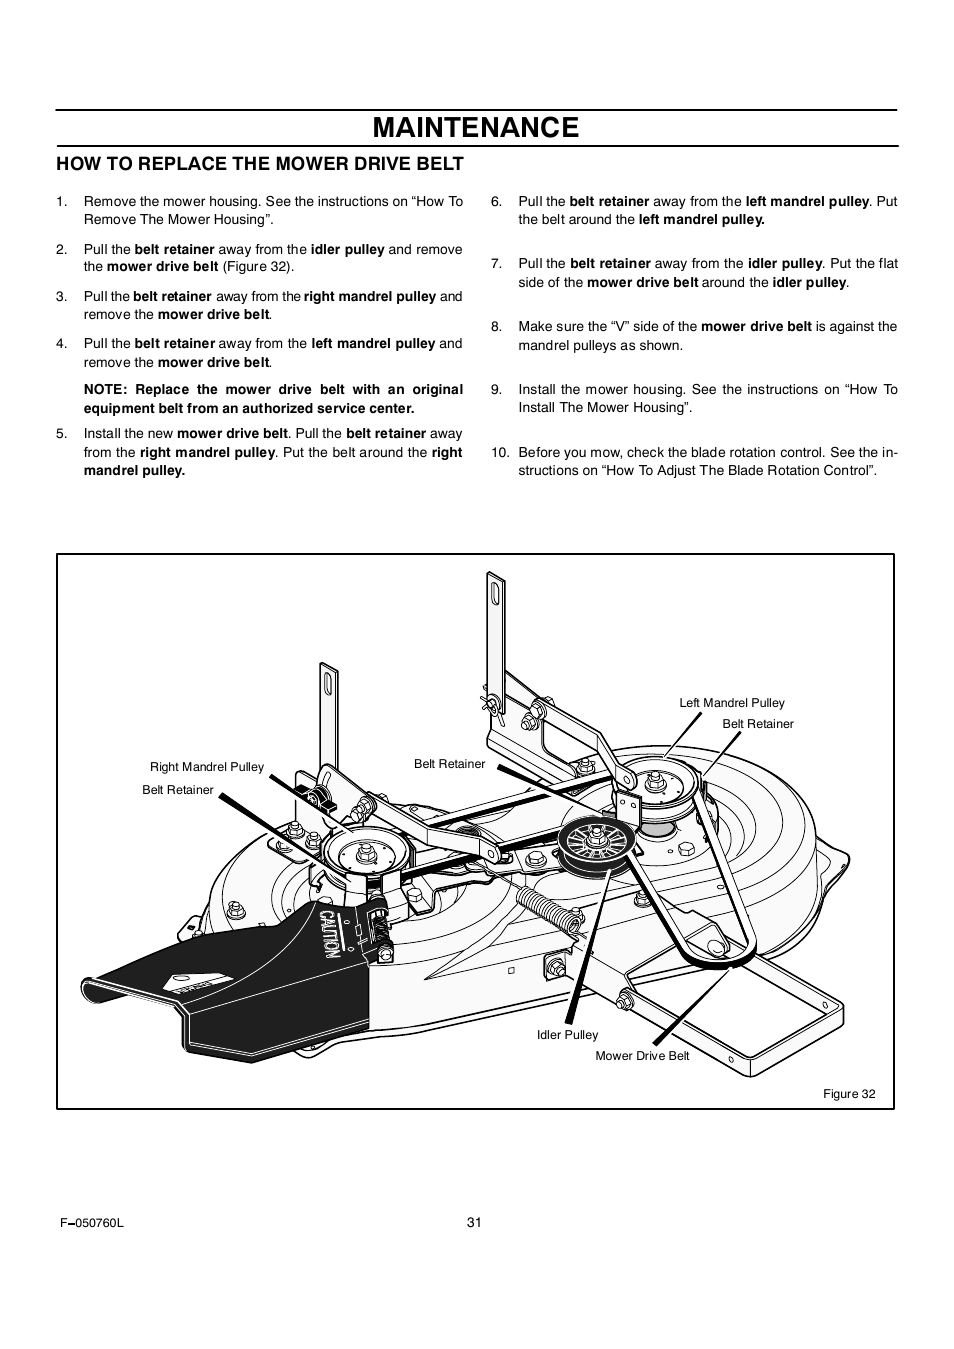 Maintenance, How to replace the mower drive belt | Rover Clipper  405606x108A User Manual |